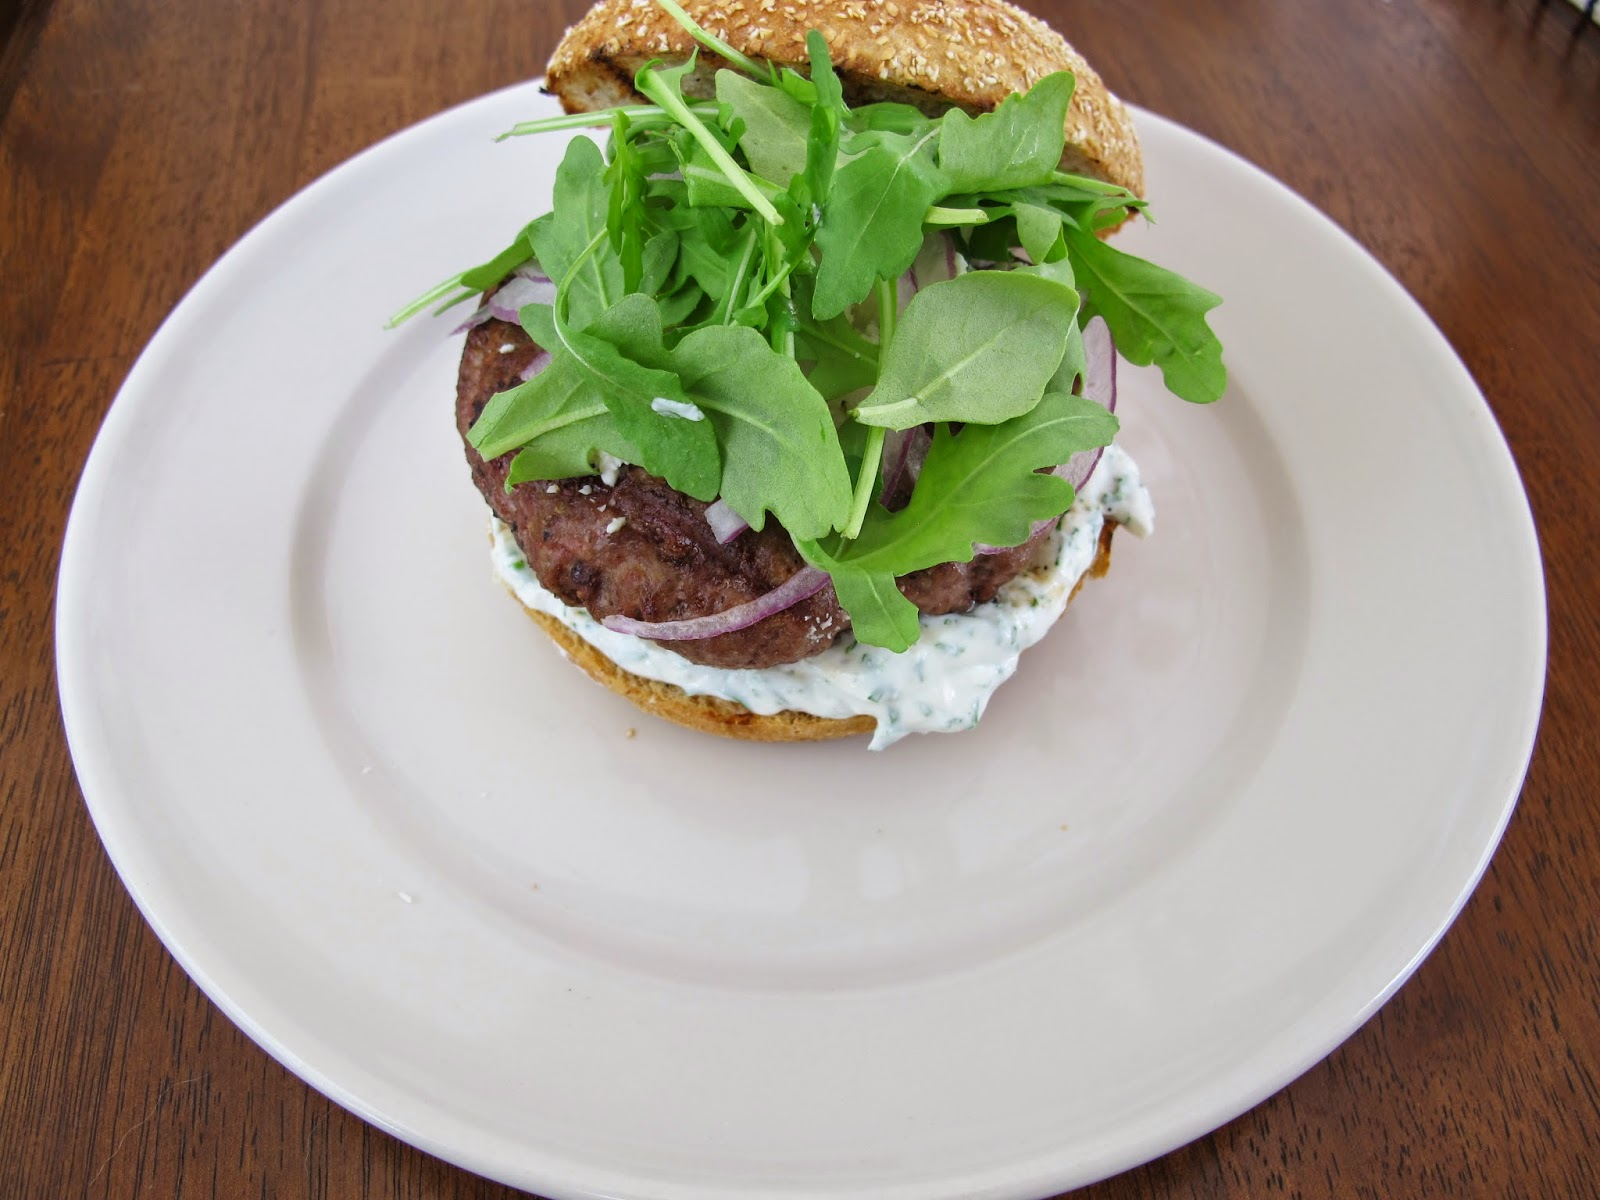 Grilled Lamb Burgers with Feta Cheese and Tzatziki Sauce